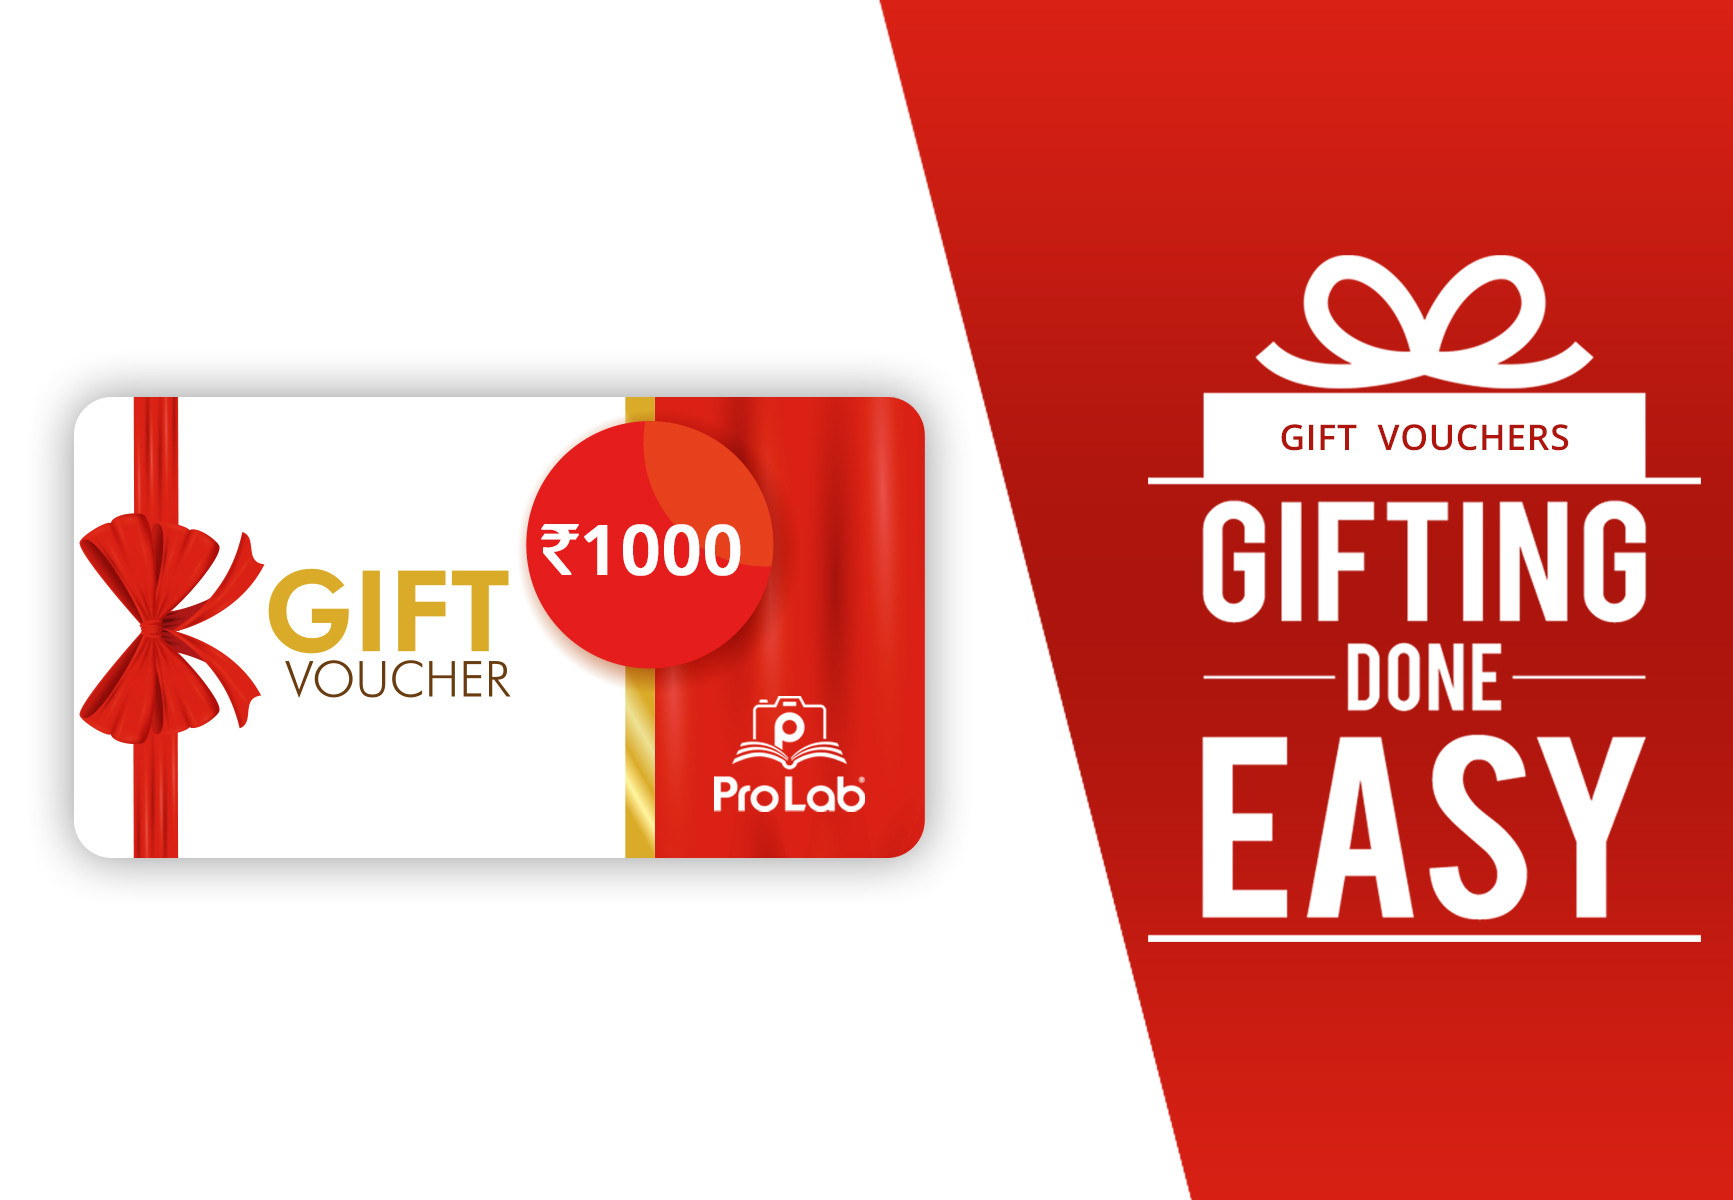 Gift Vouchers - The best gift to choose for anyone on any occasion.